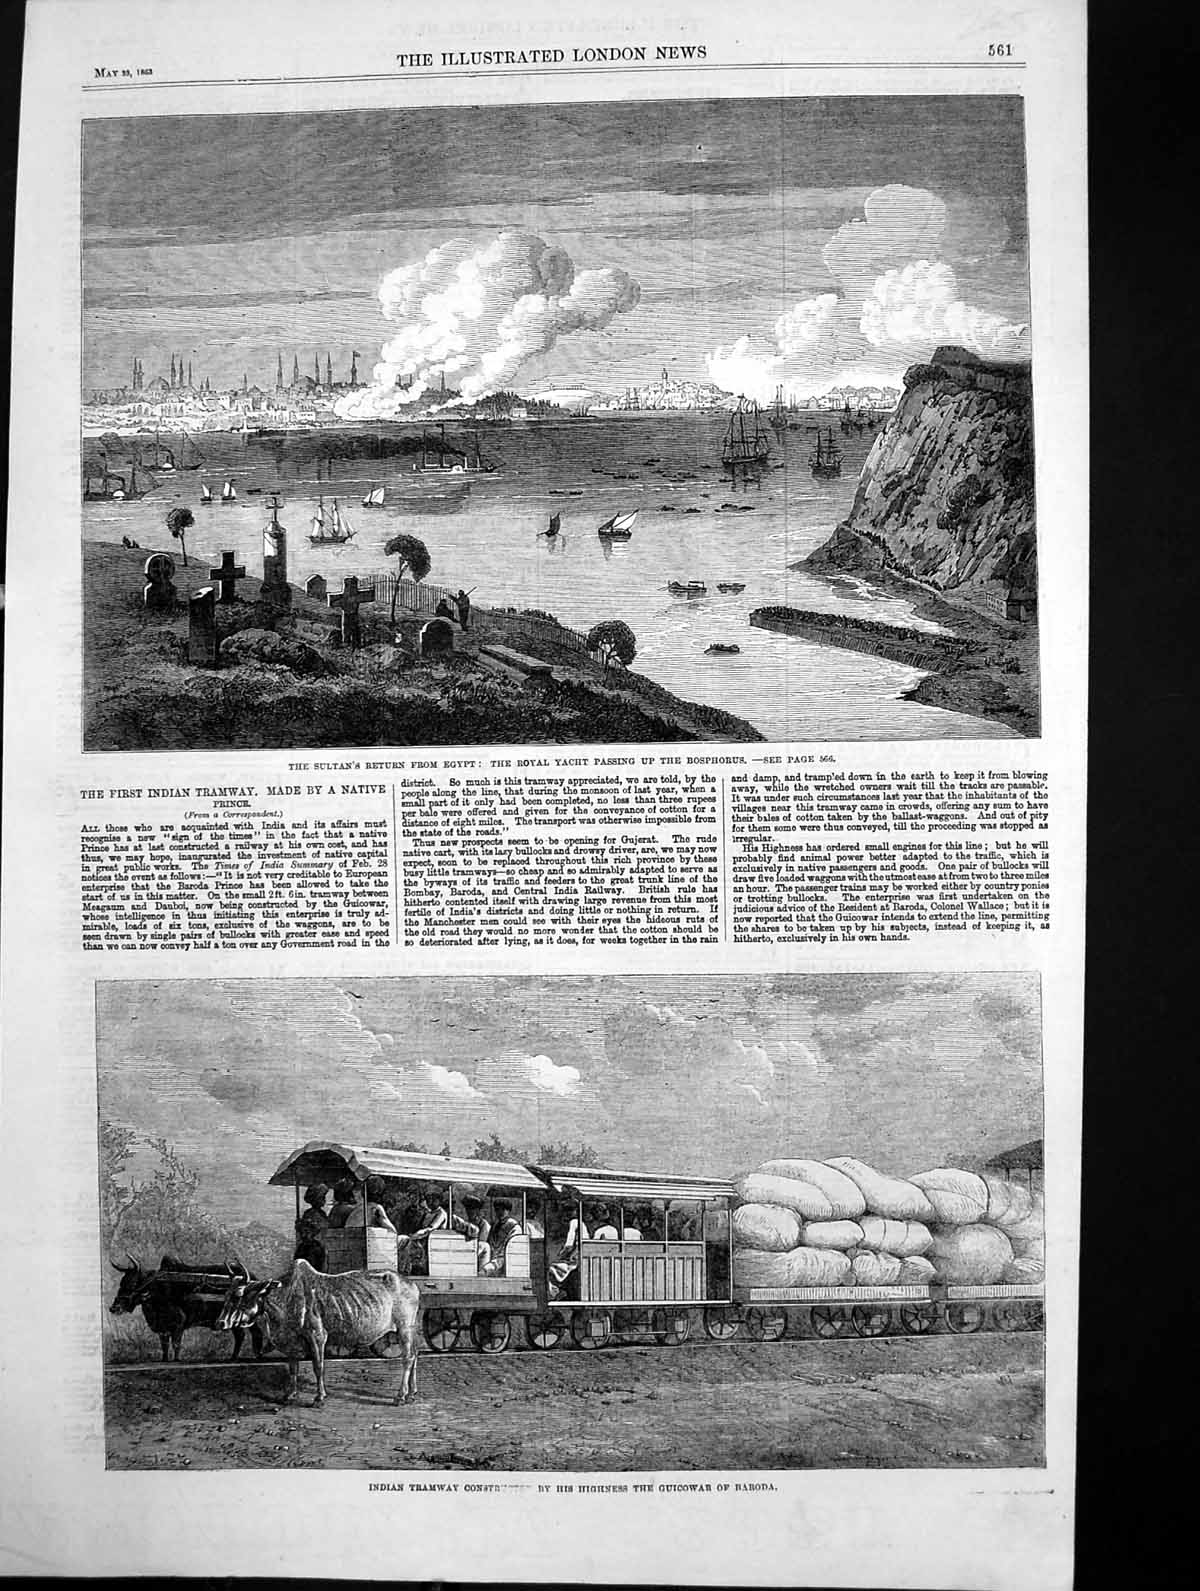 Antique-Old-Print-Indian-Tramway-Construction-Sultans-Yacht-Bosphorus-1863-19th